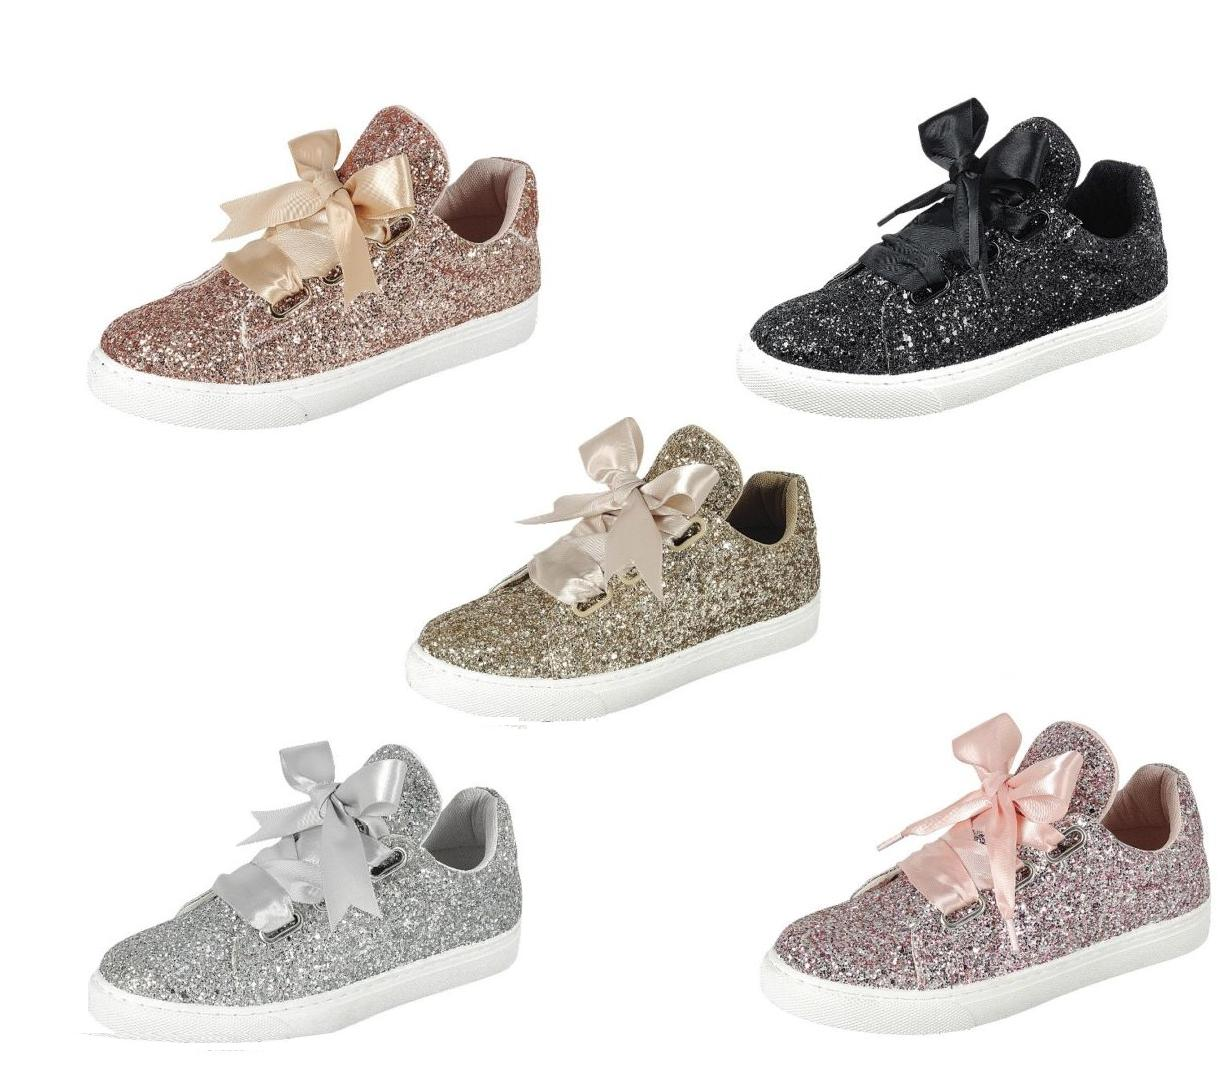 New Womens Sequin Casual Lace Up Tennis Shoes Glitter All Ov